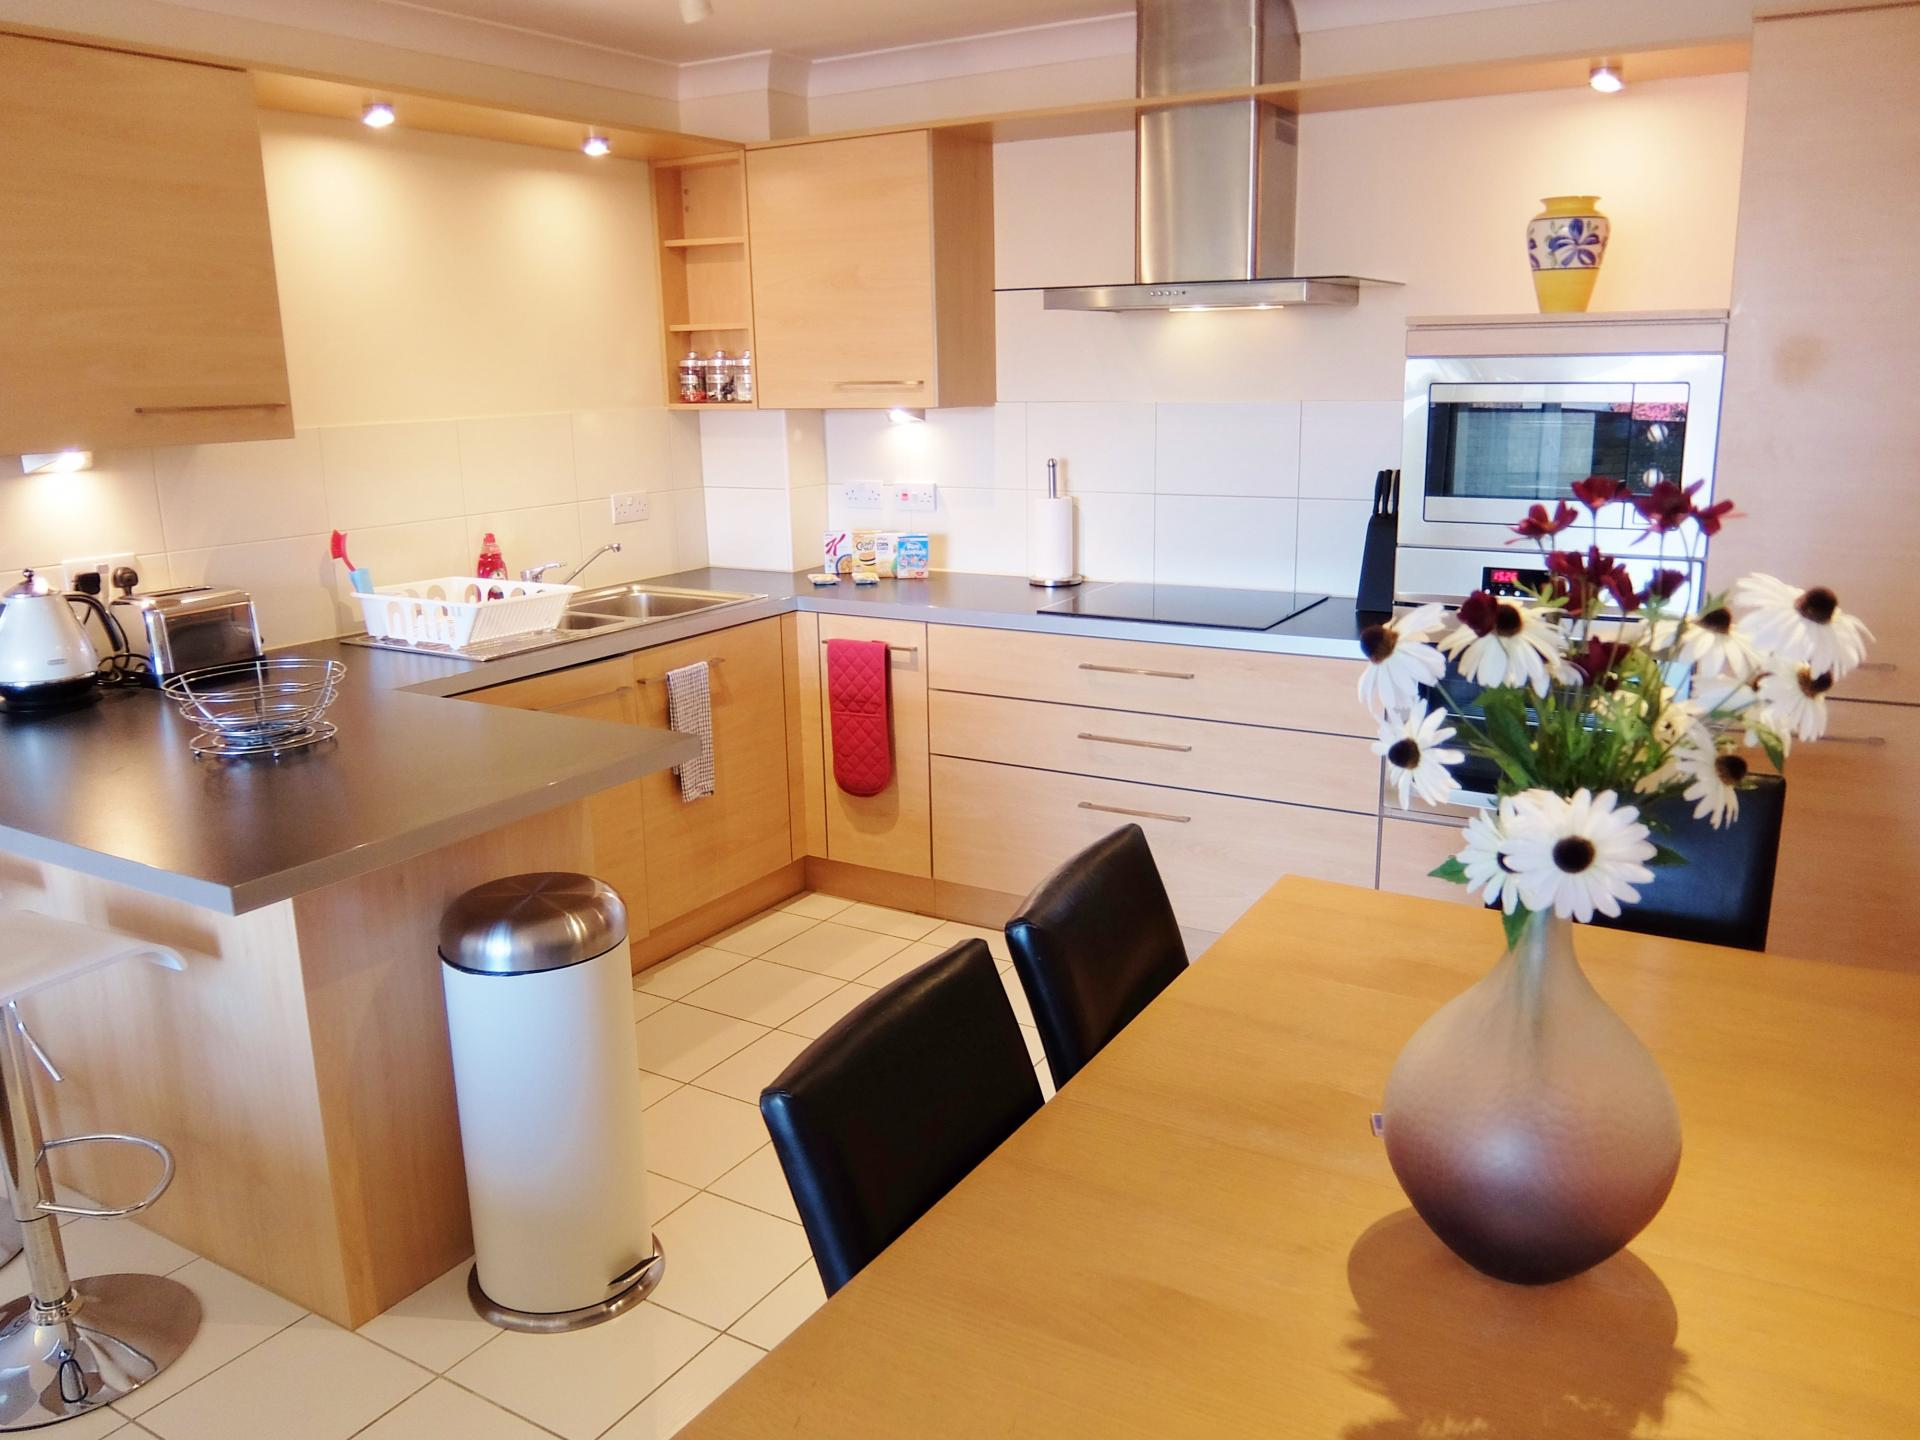 Kitchen at Hampton Court Serviced Apartments, Hampton Court, London - Citybase Apartments